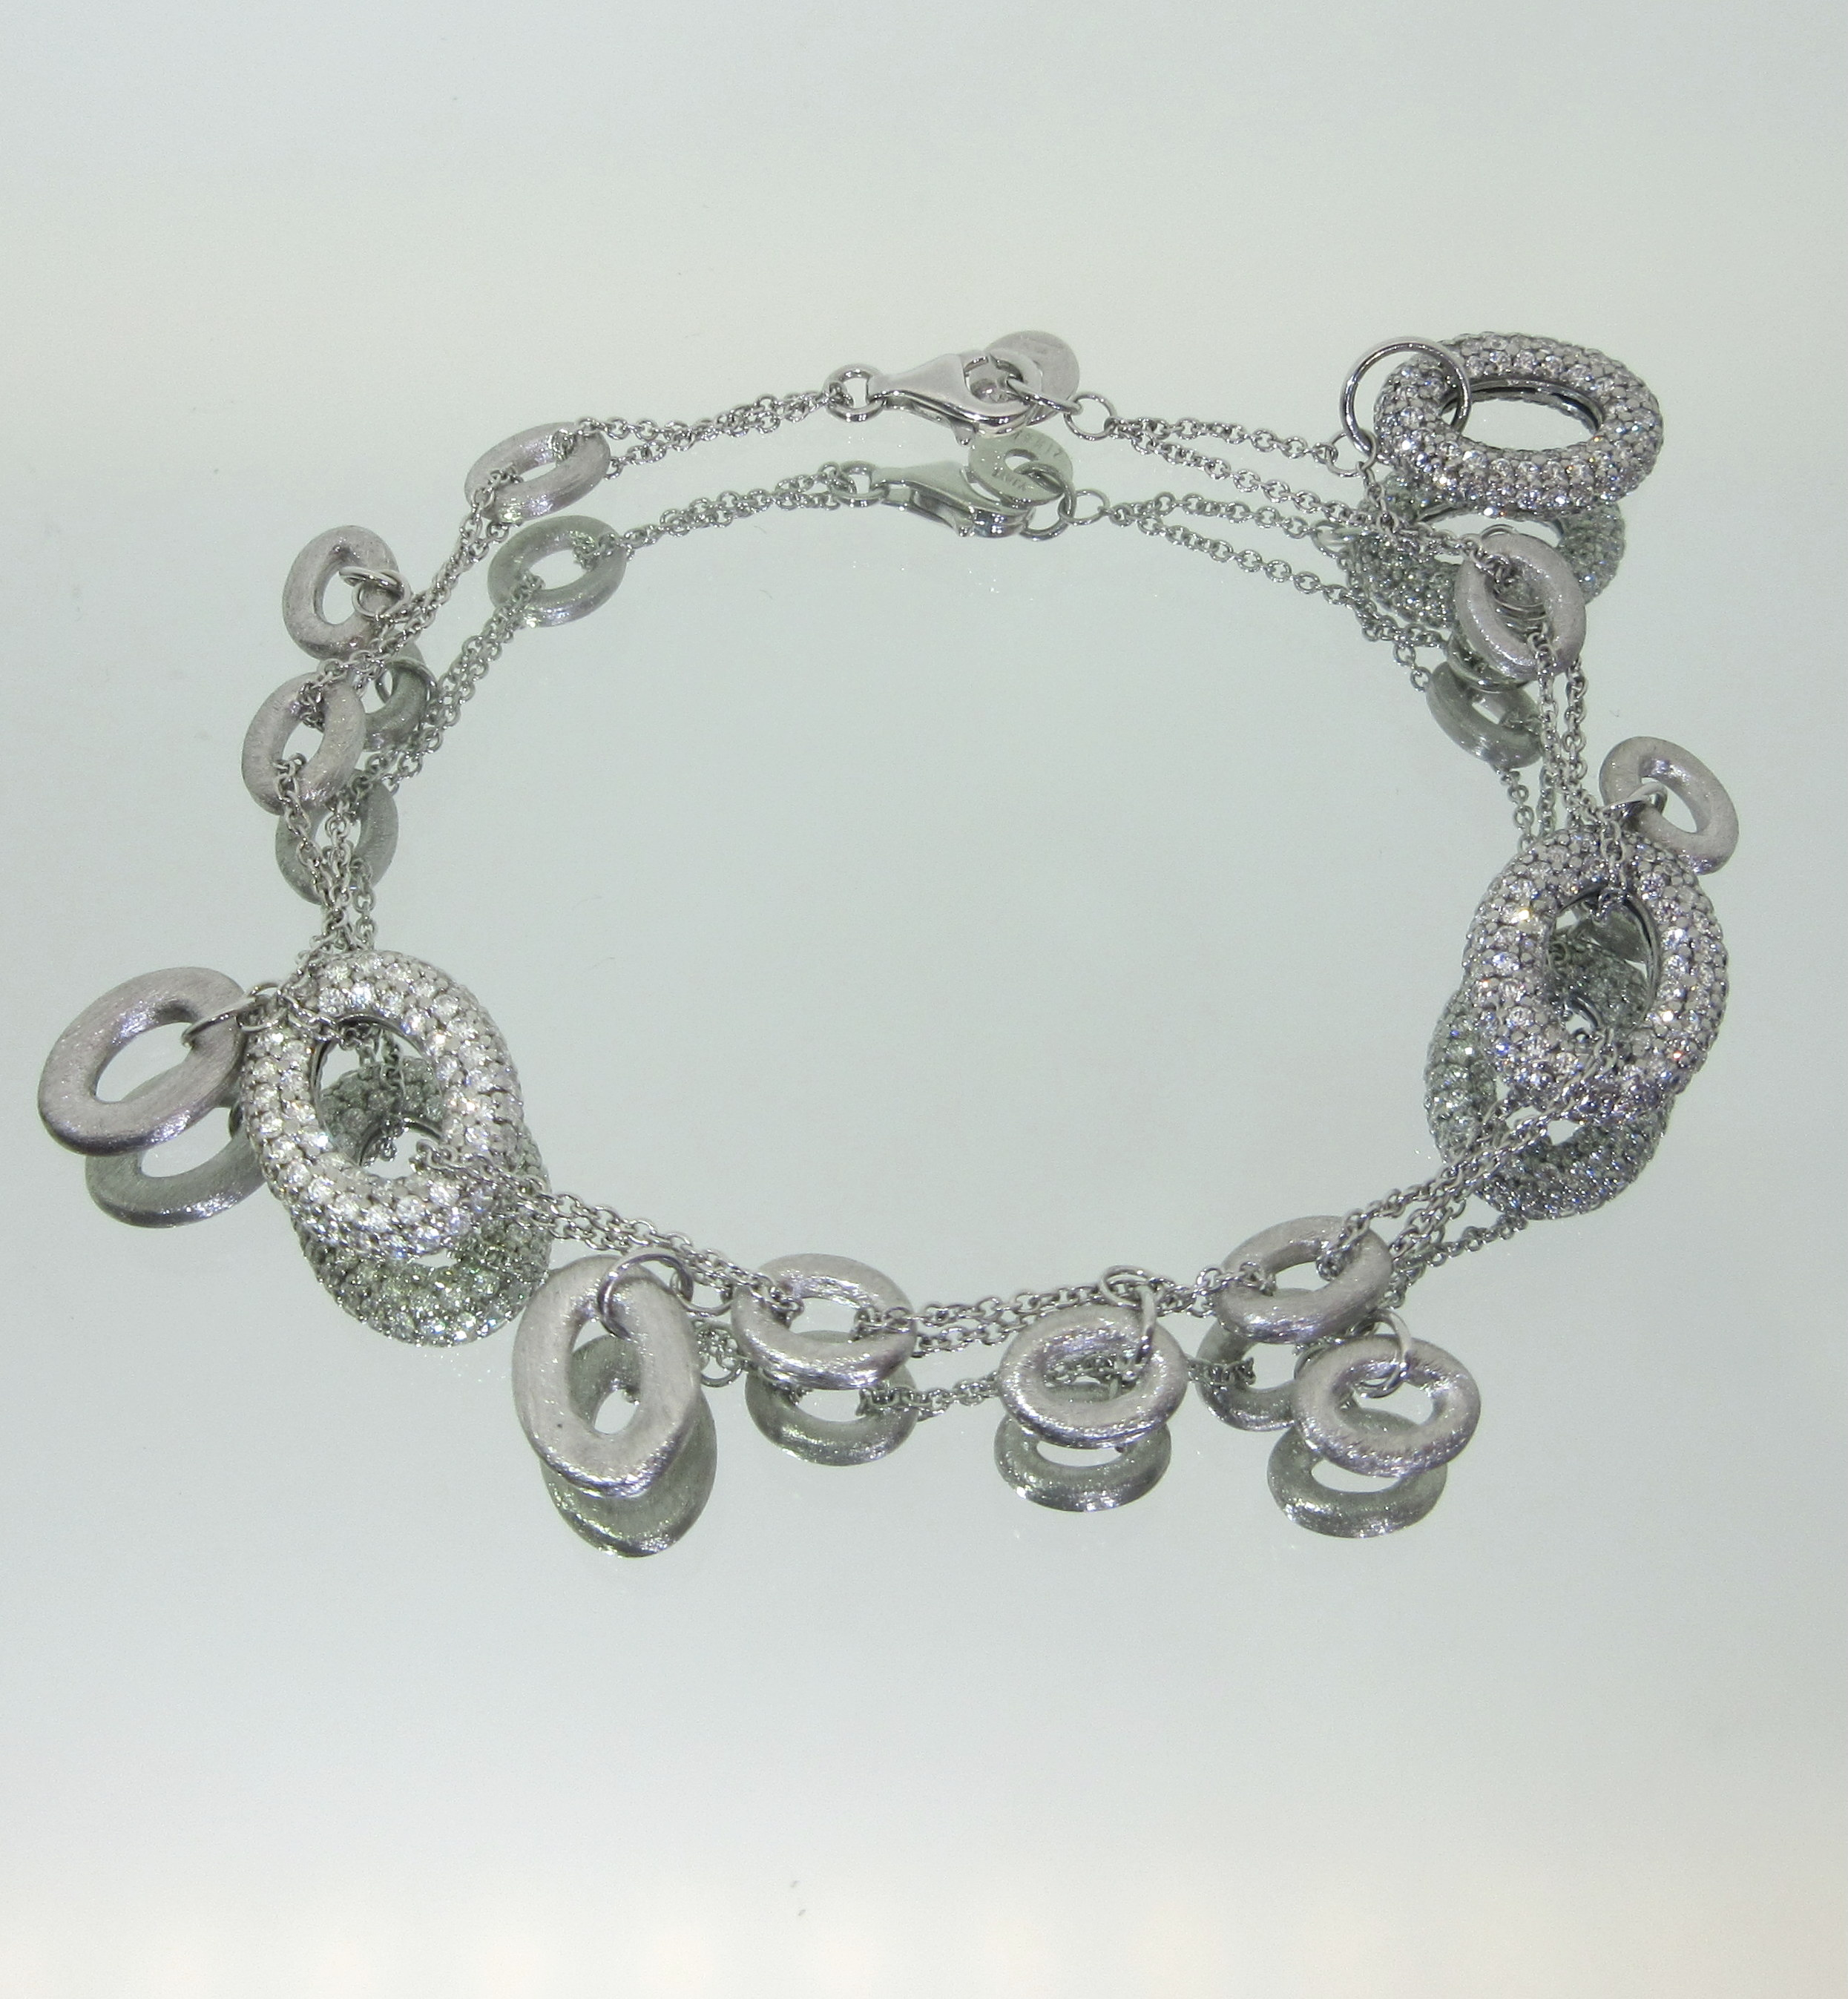 Crystal & Sterling Silver Double Chain Bracelet